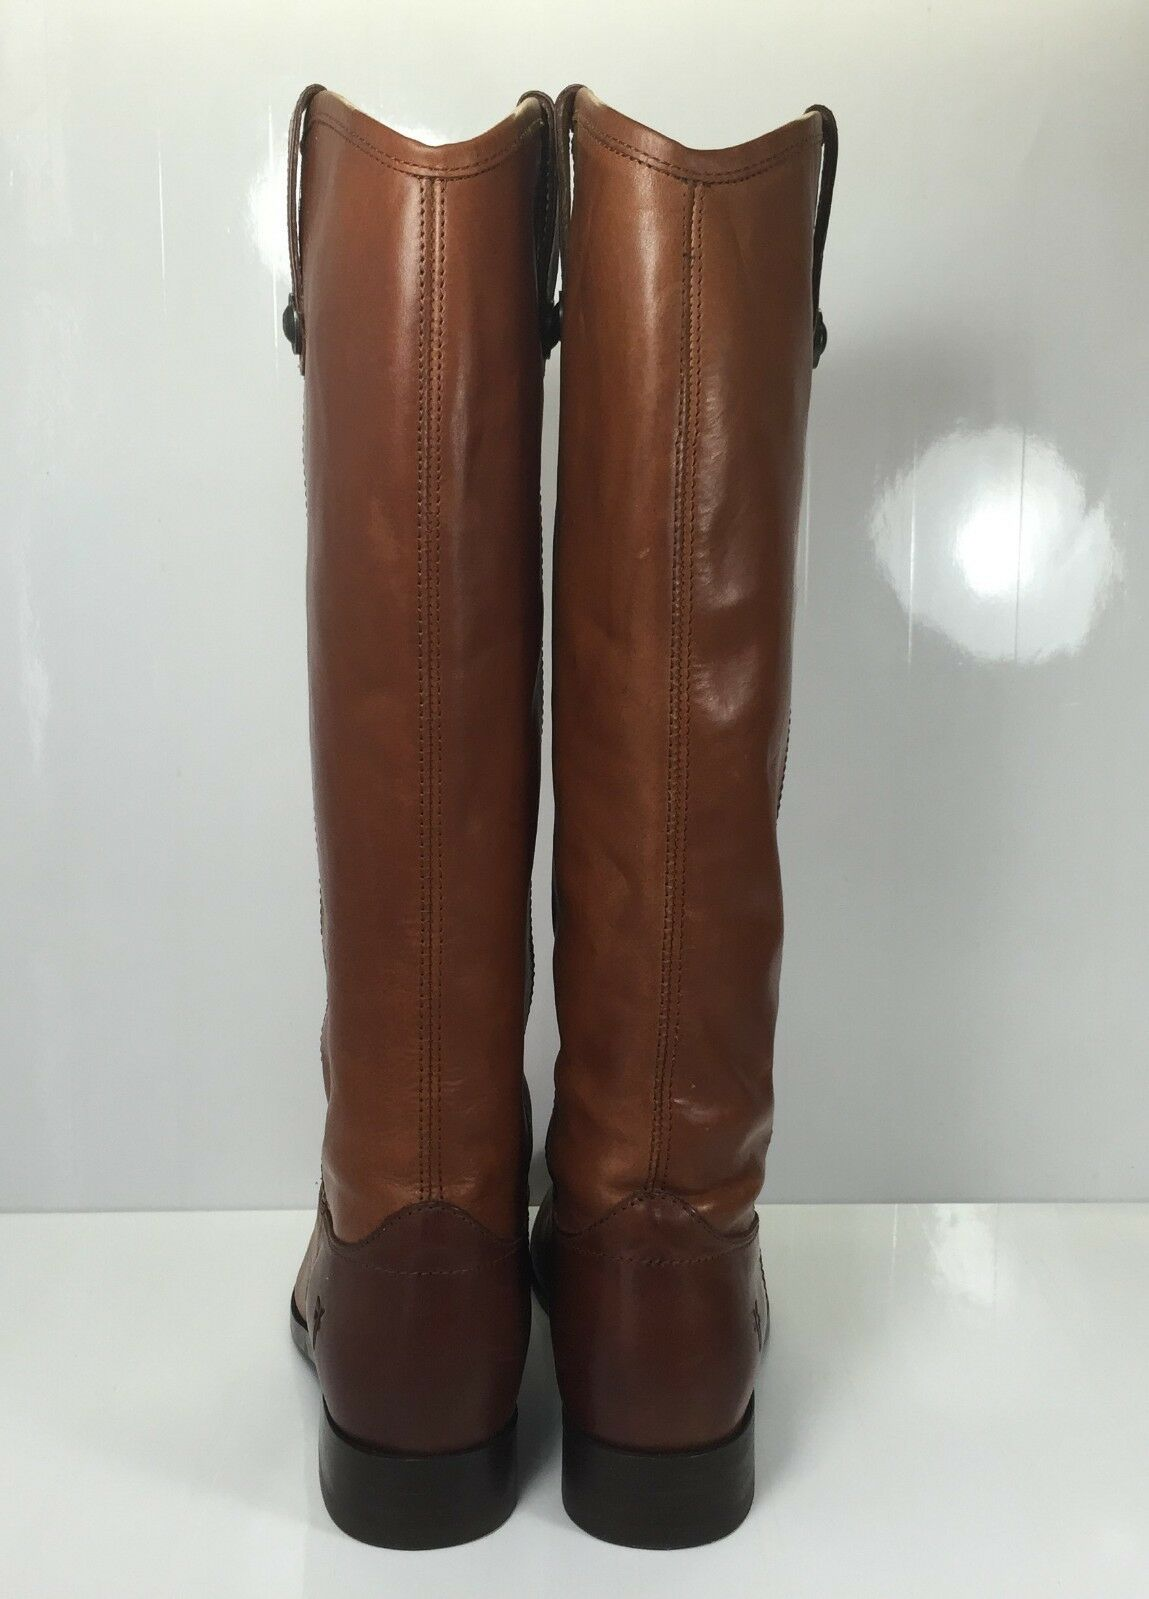 Frye Melissa Button Womens Boot Cognac size 6 B Extended Extended Extended Calf b0aafe